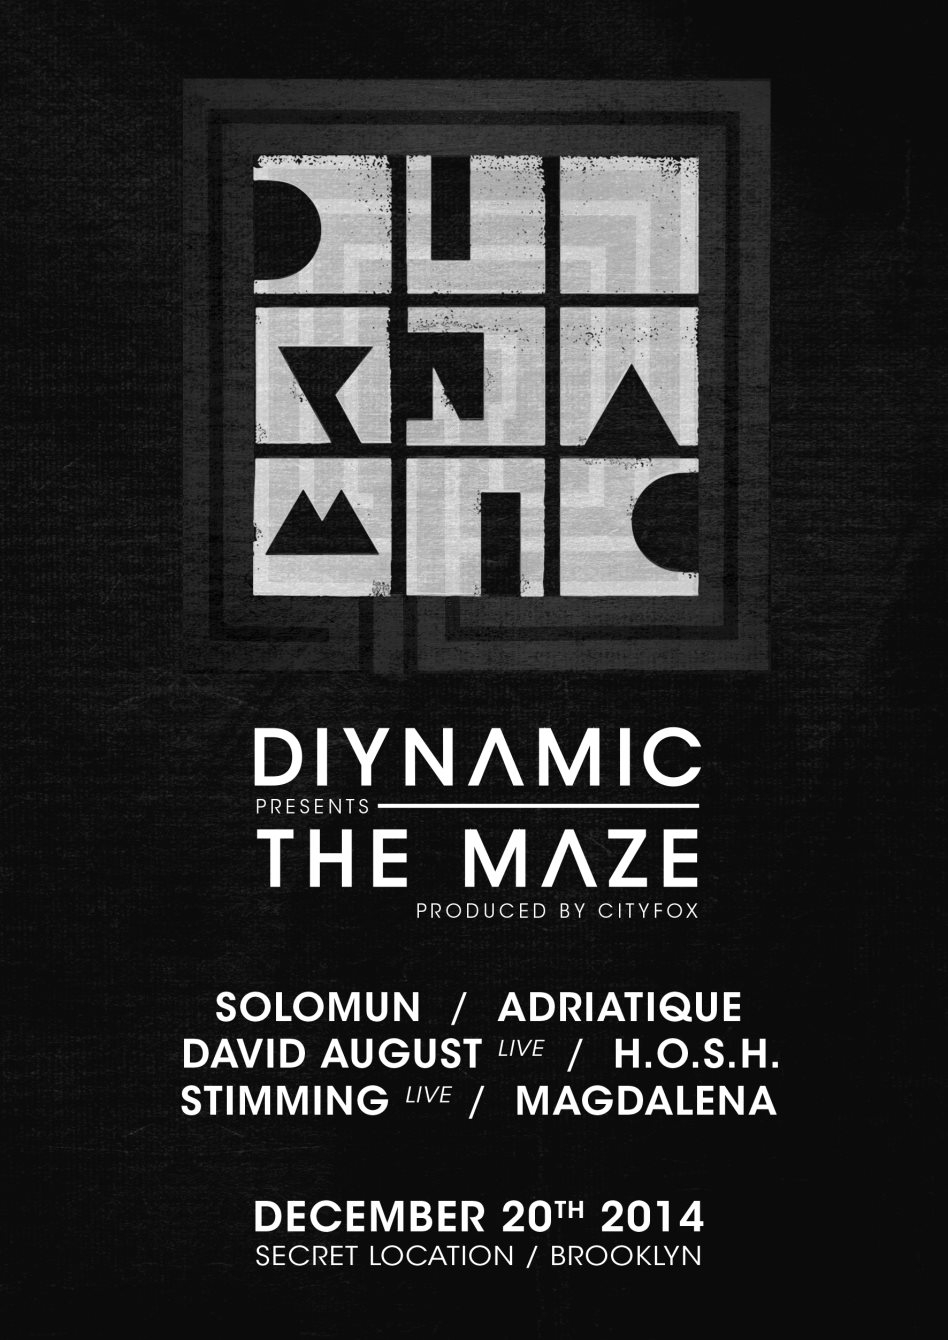 Diynamic presents The Maze, Produced by Cityfox with Solomun, Adriatique, David August and More - Flyer back